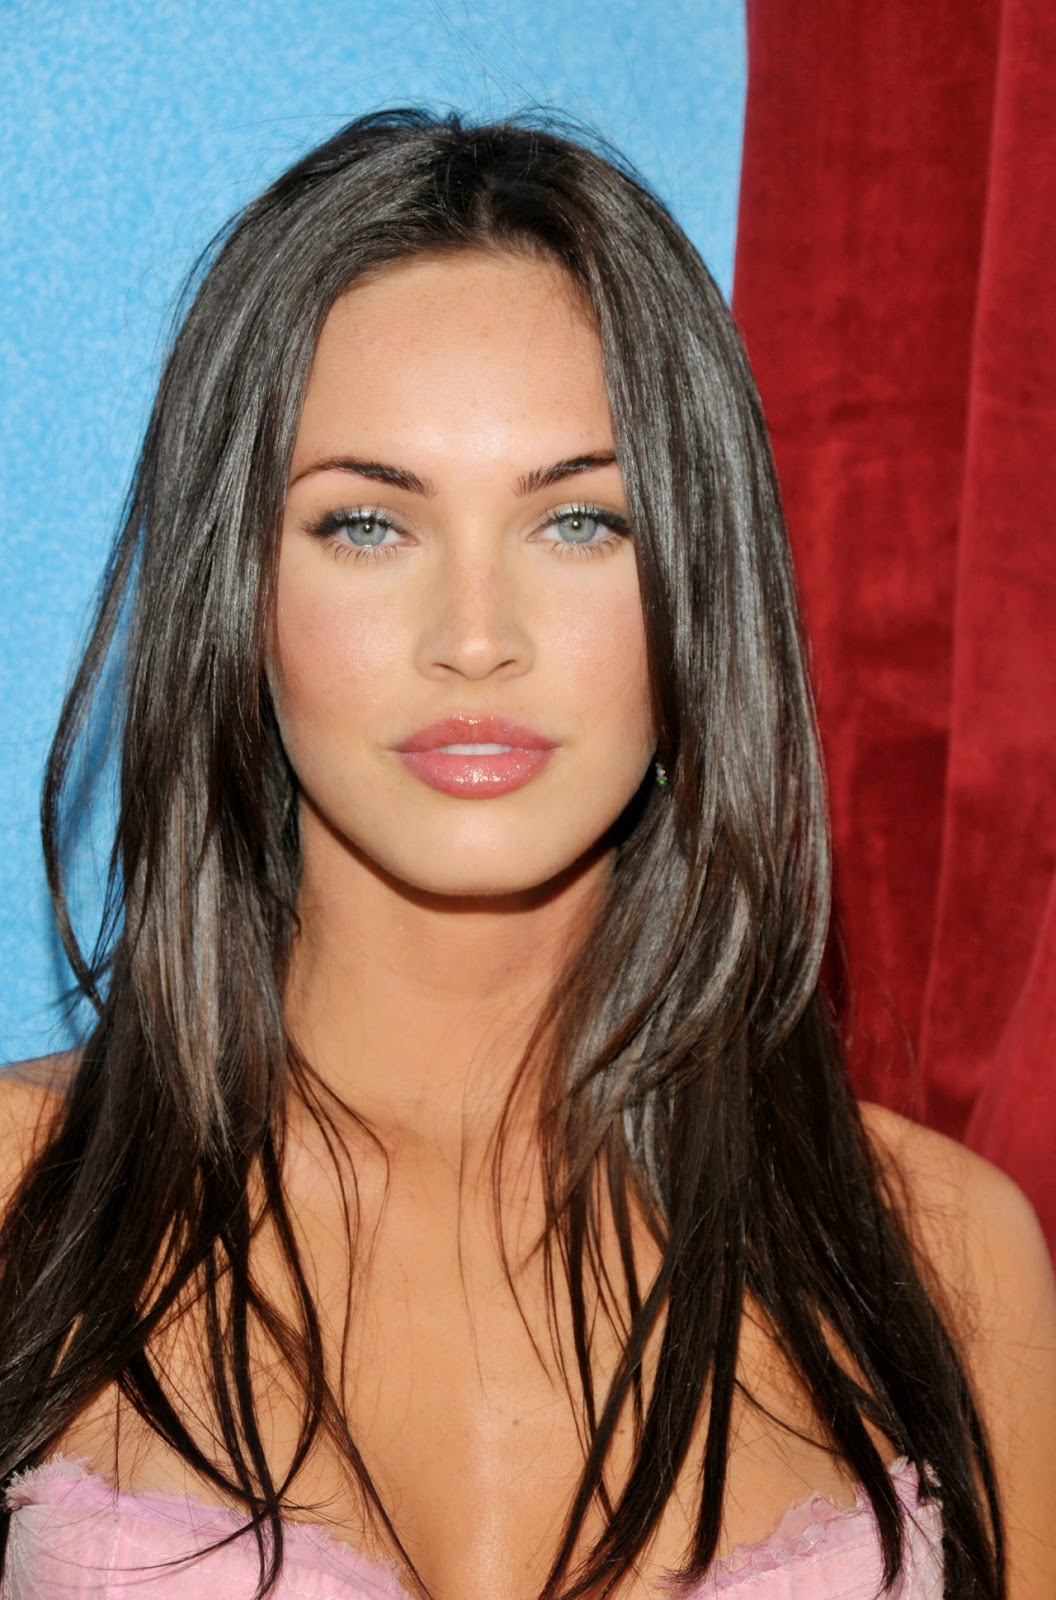 Megan Fox Selfie See Her Without Makeup News Hubz